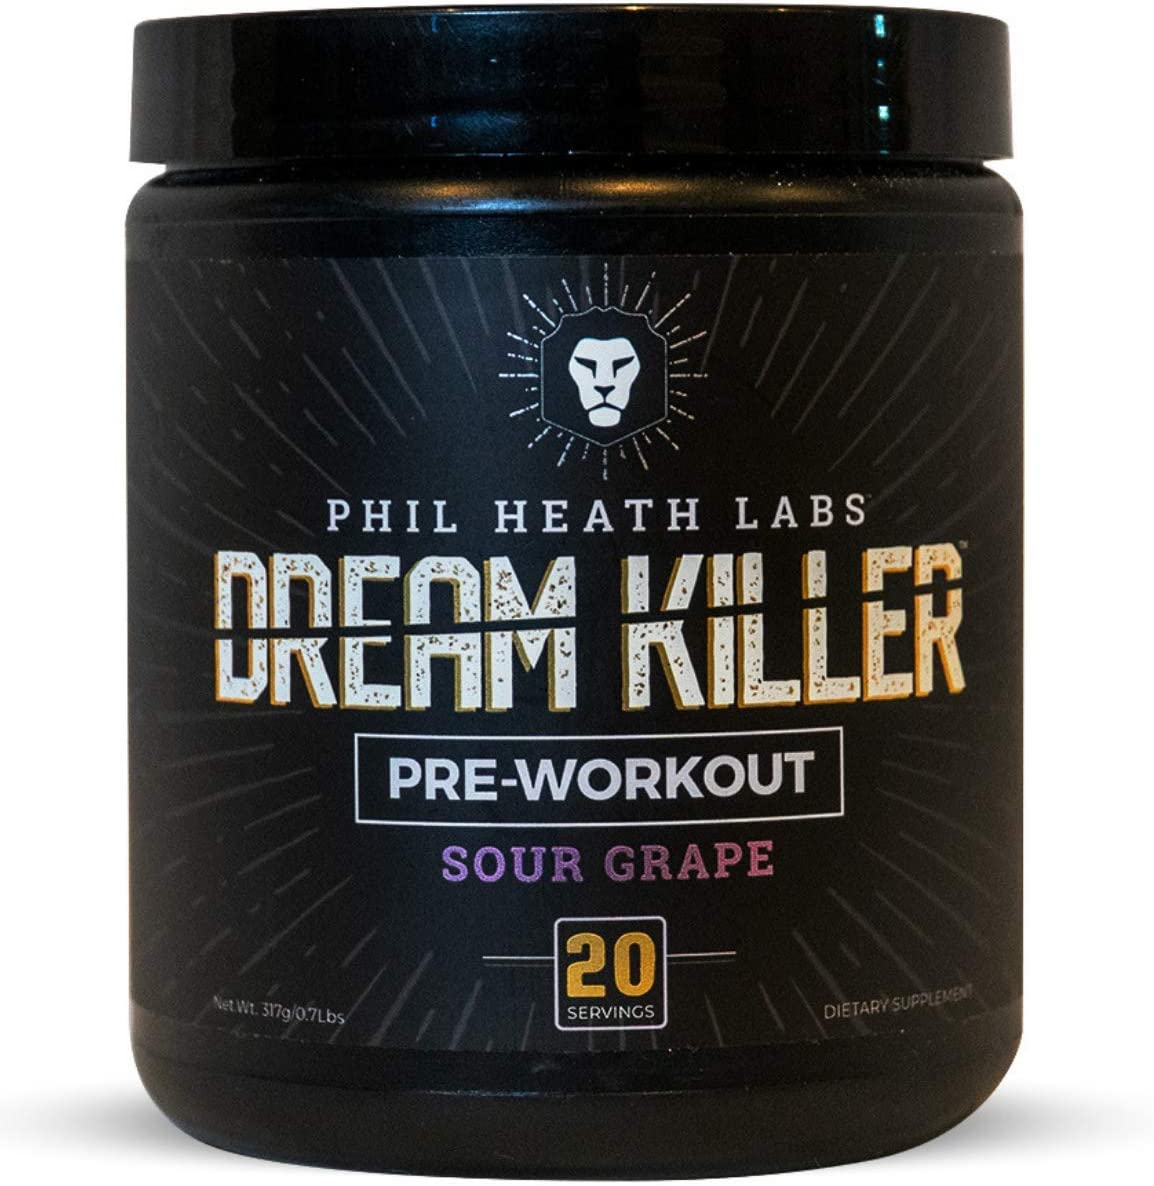 Phil Heath Labs All Natural DreamKiller Preworkout Supplement for Energy Pump Focus – Teacrine Creatine Beta Alanine Caffeine 20 Servings